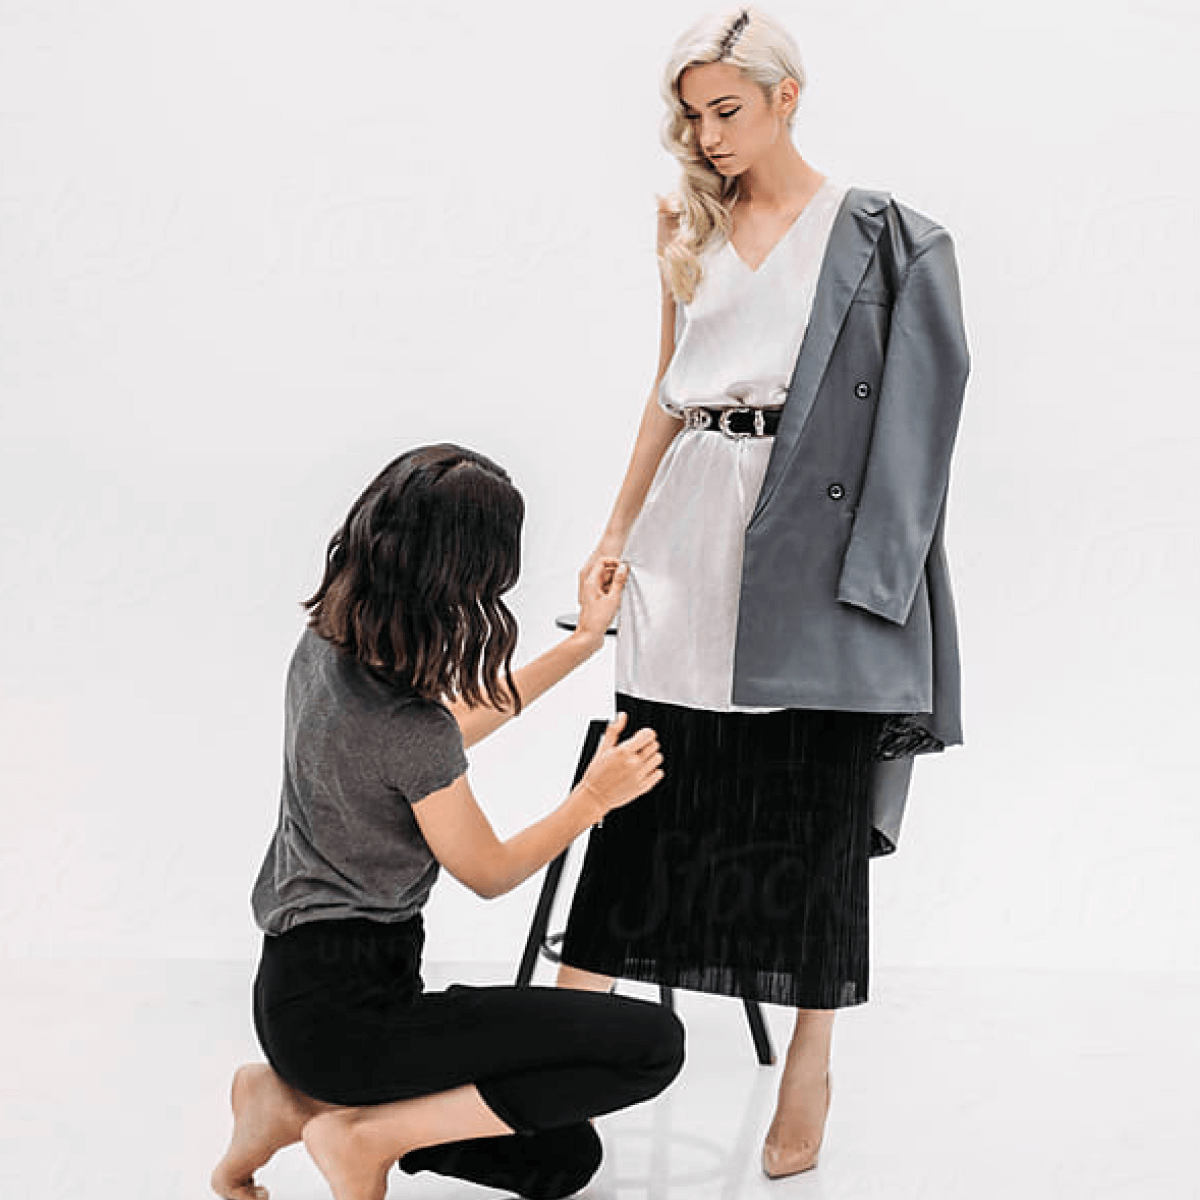 Personal Styling Session